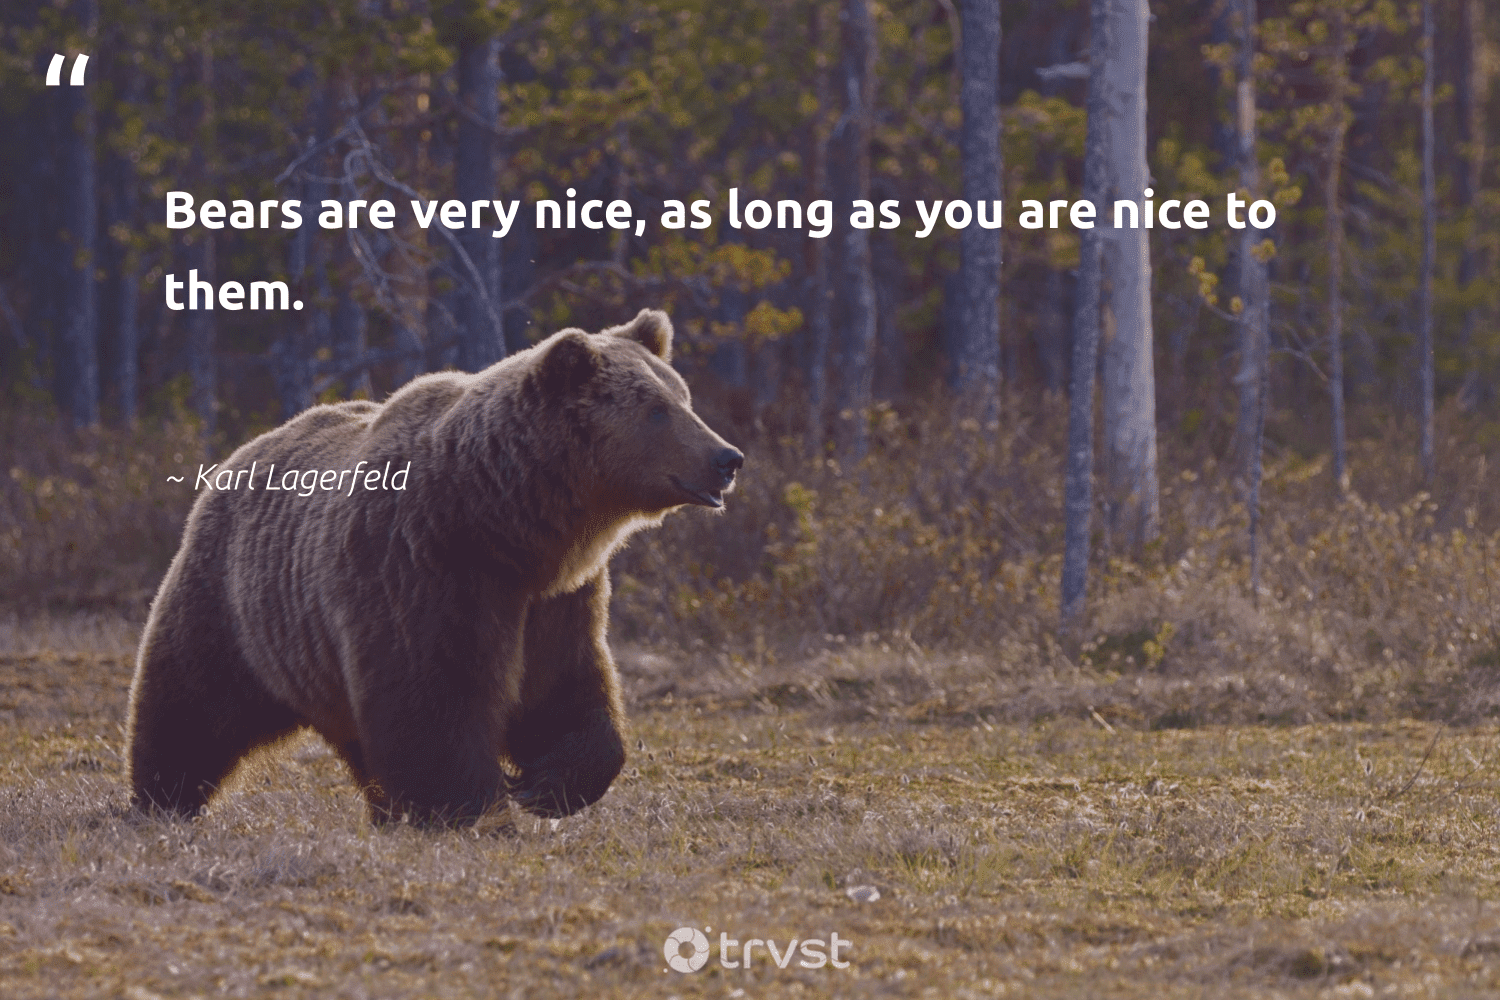 """""""Bears are very nice, as long as you are nice to them.""""  - Karl Lagerfeld #trvst #quotes #bears #bear #collectiveaction #amazingworld #ecoconscious #wildlifeprotection #socialchange #majesticwildlife #dosomething #splendidanimals"""